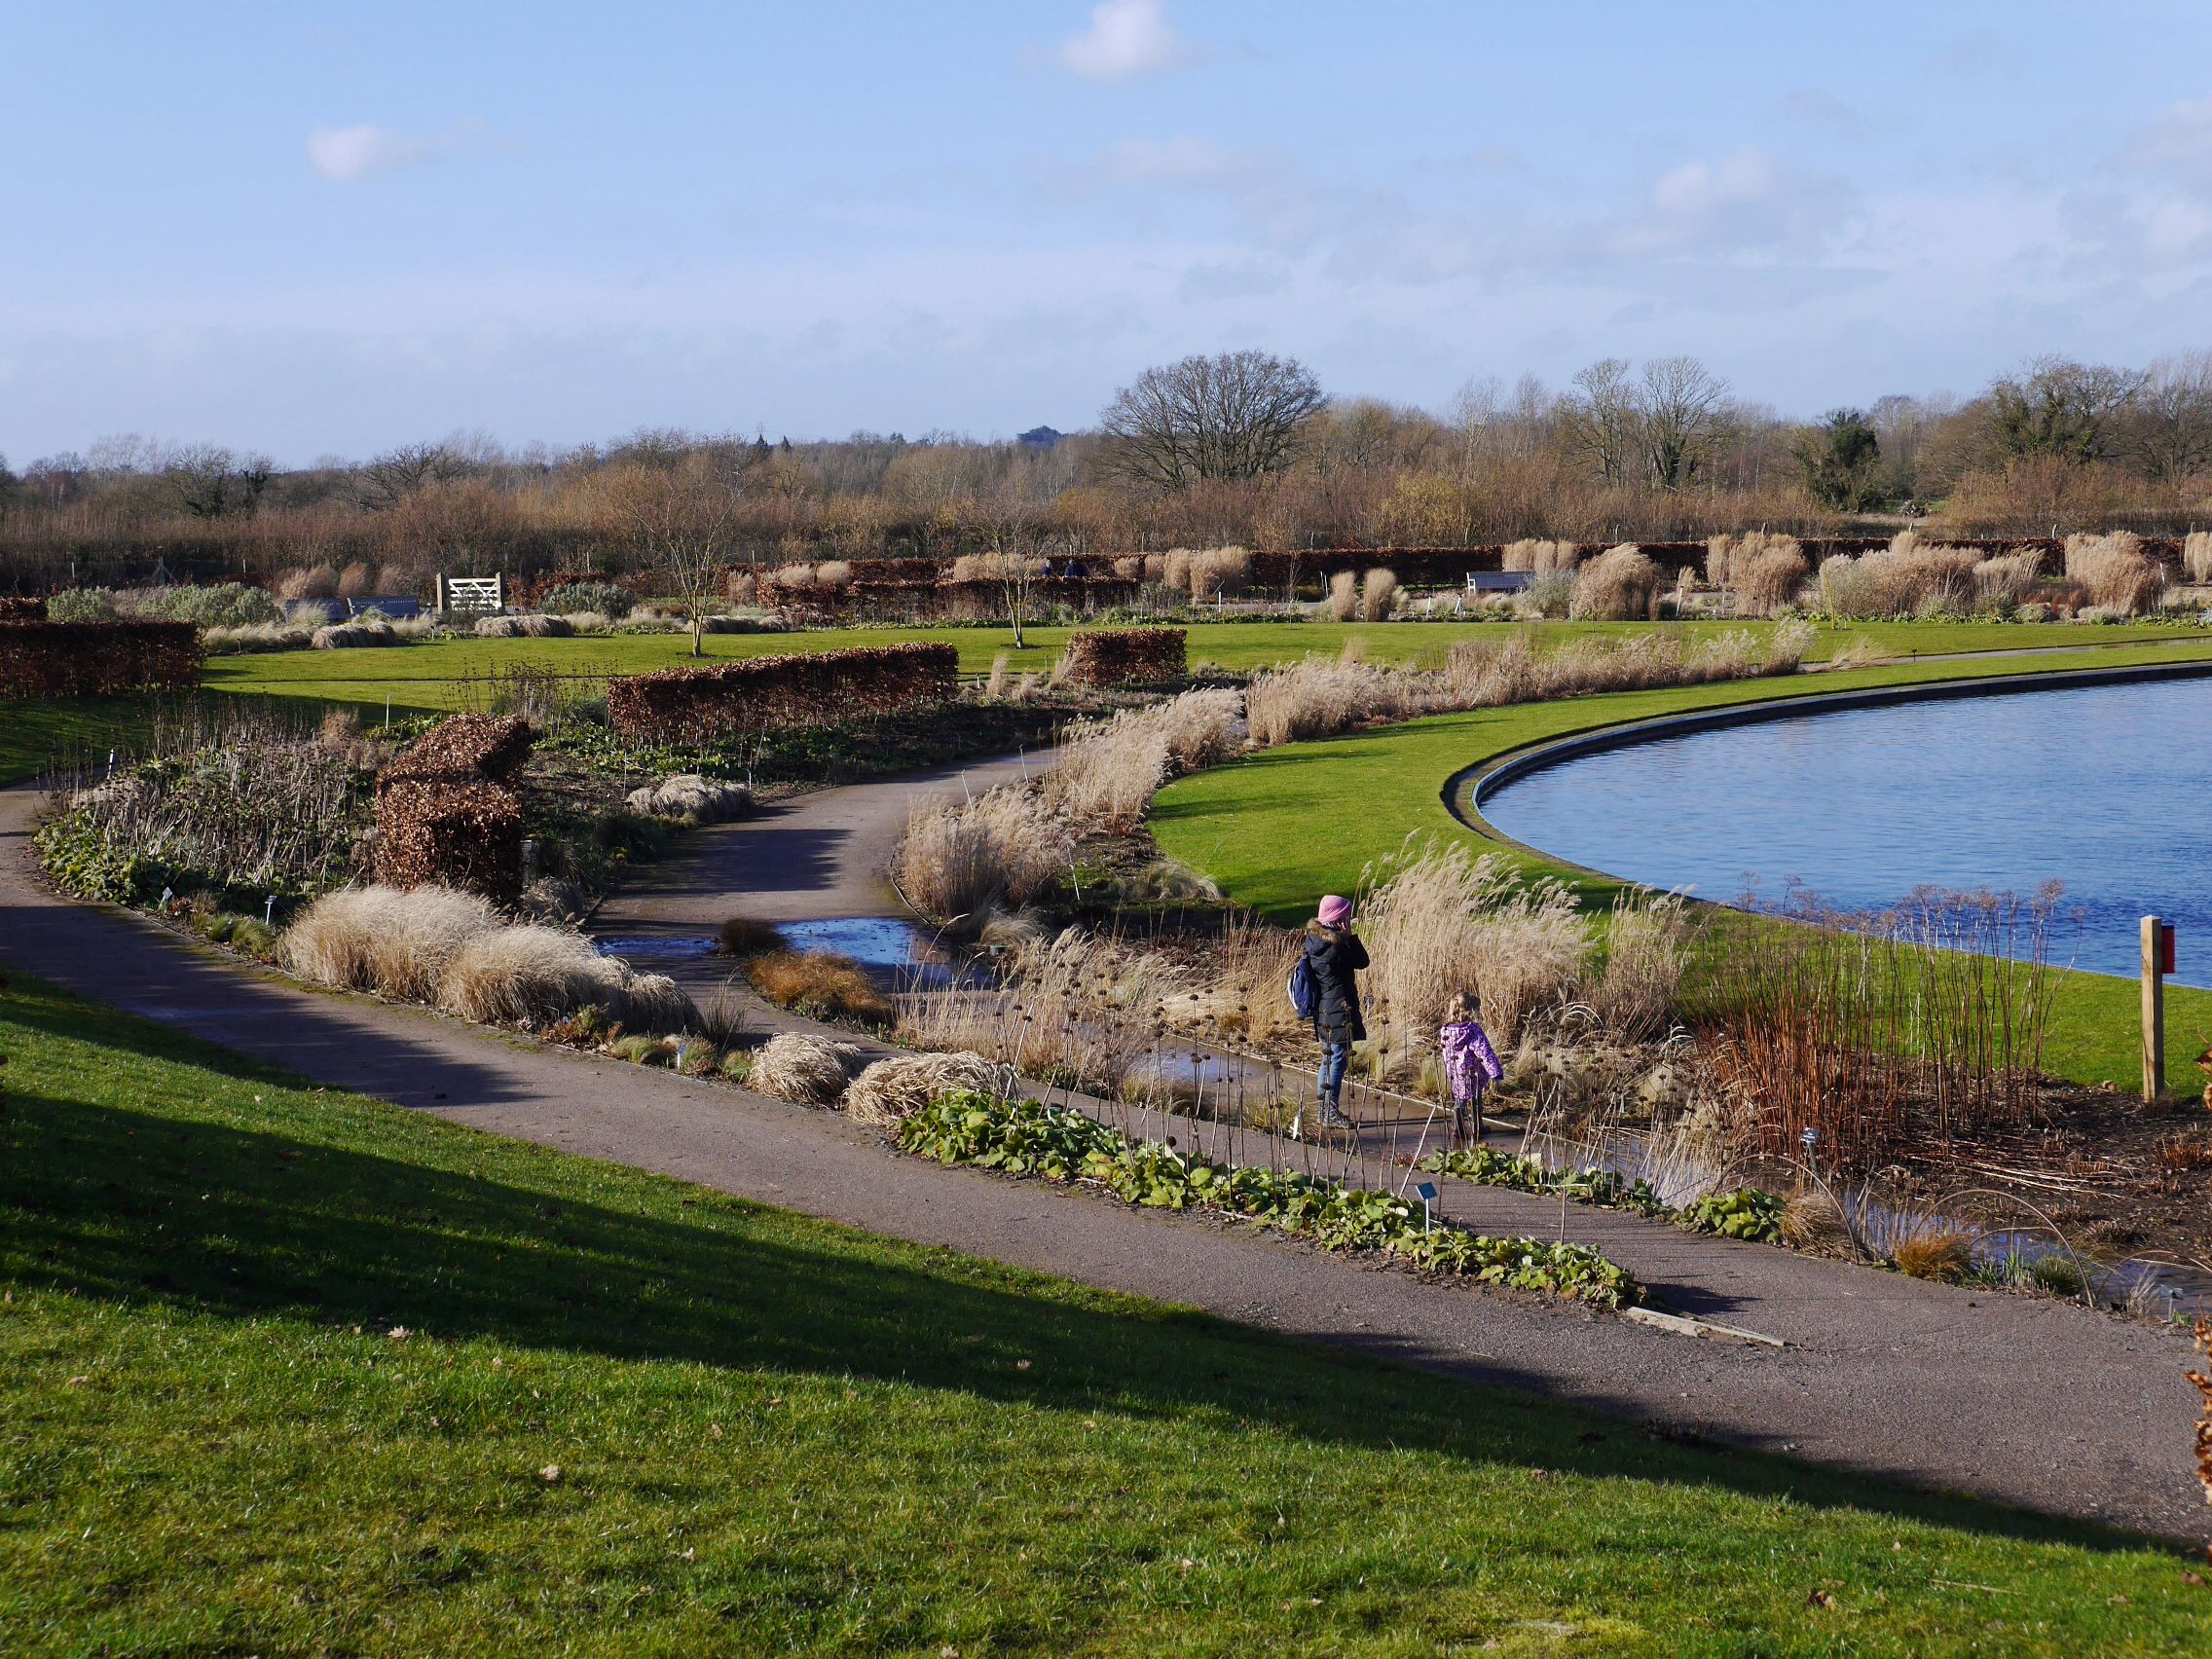 RHS Wisley (With images) | Landscape, Outdoor, Rhs